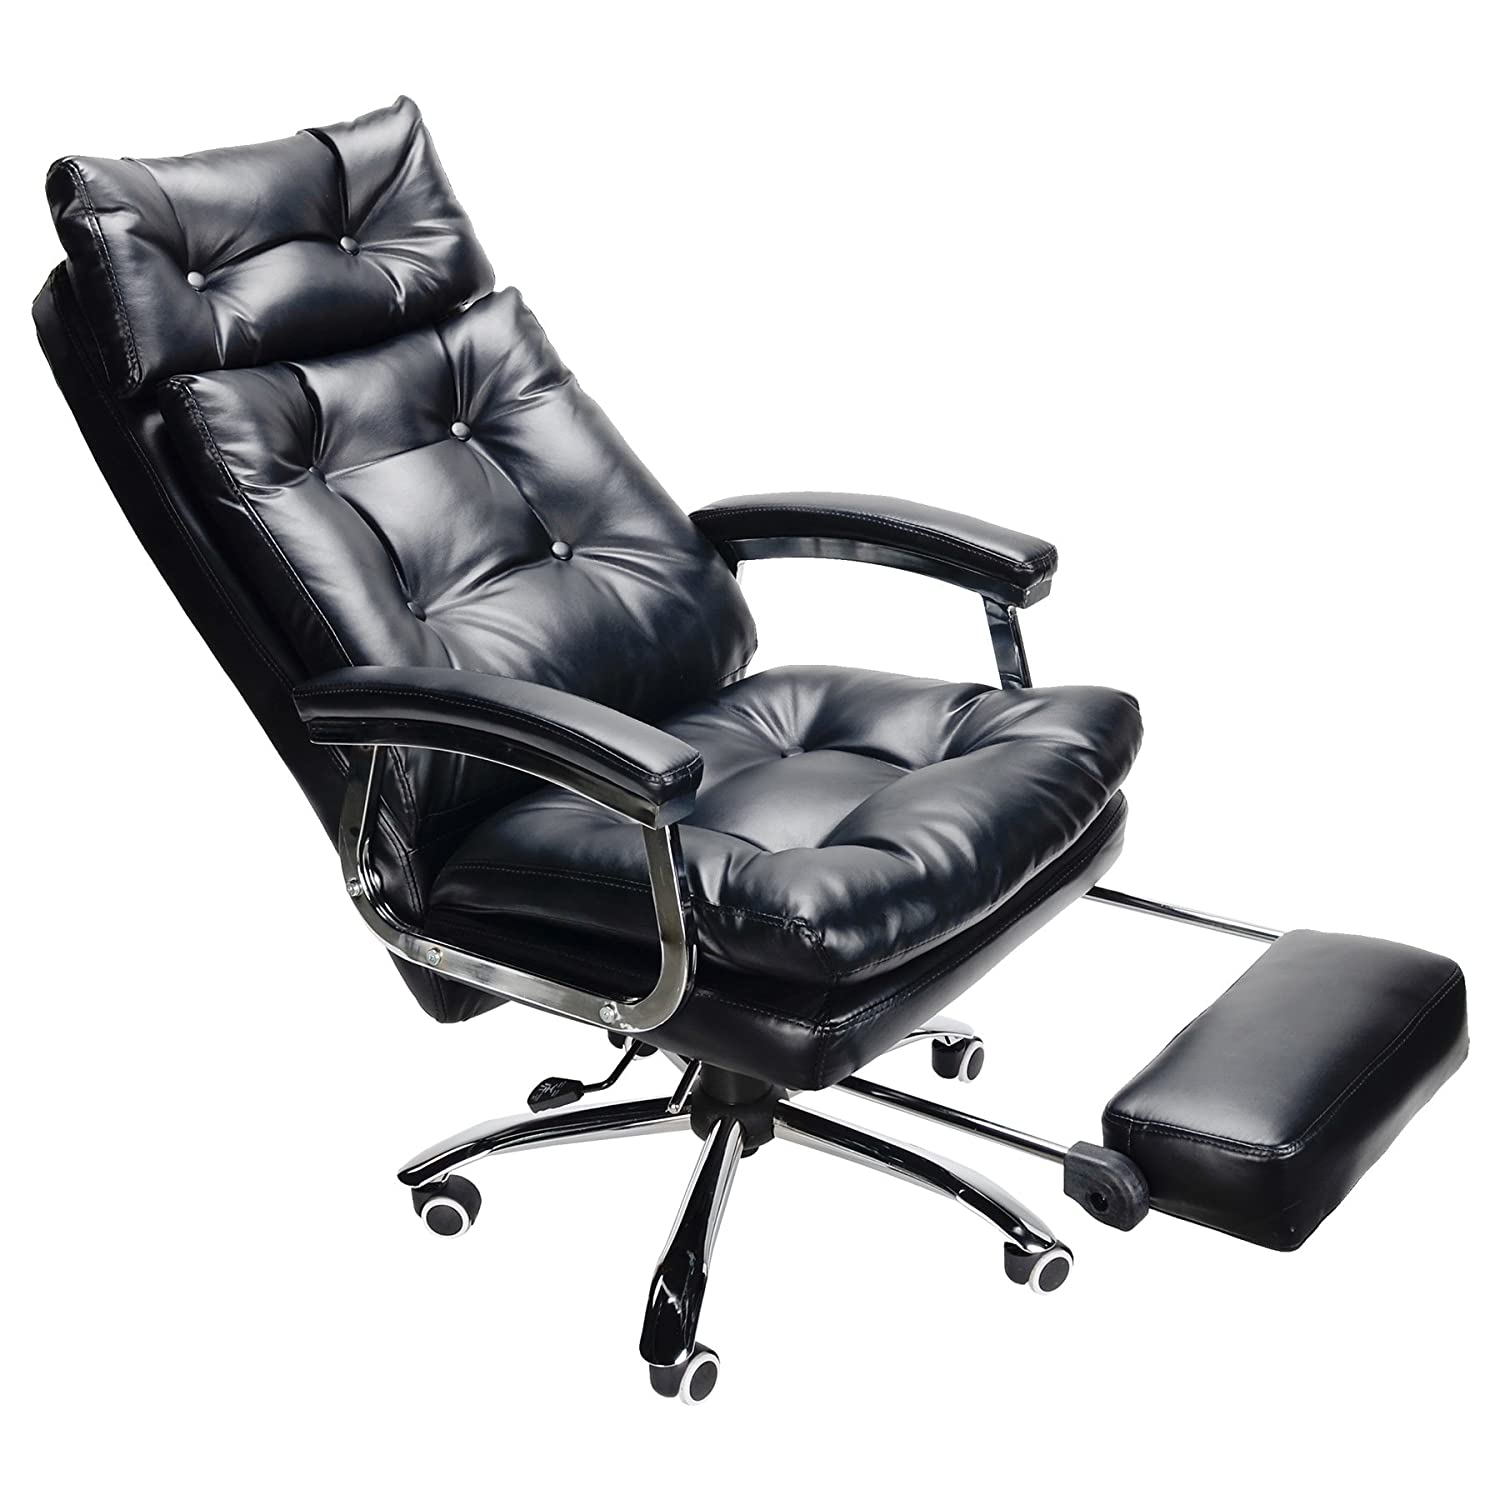 chair lafer recliners york gaga lewis office recliner jensen furniture new reclining products